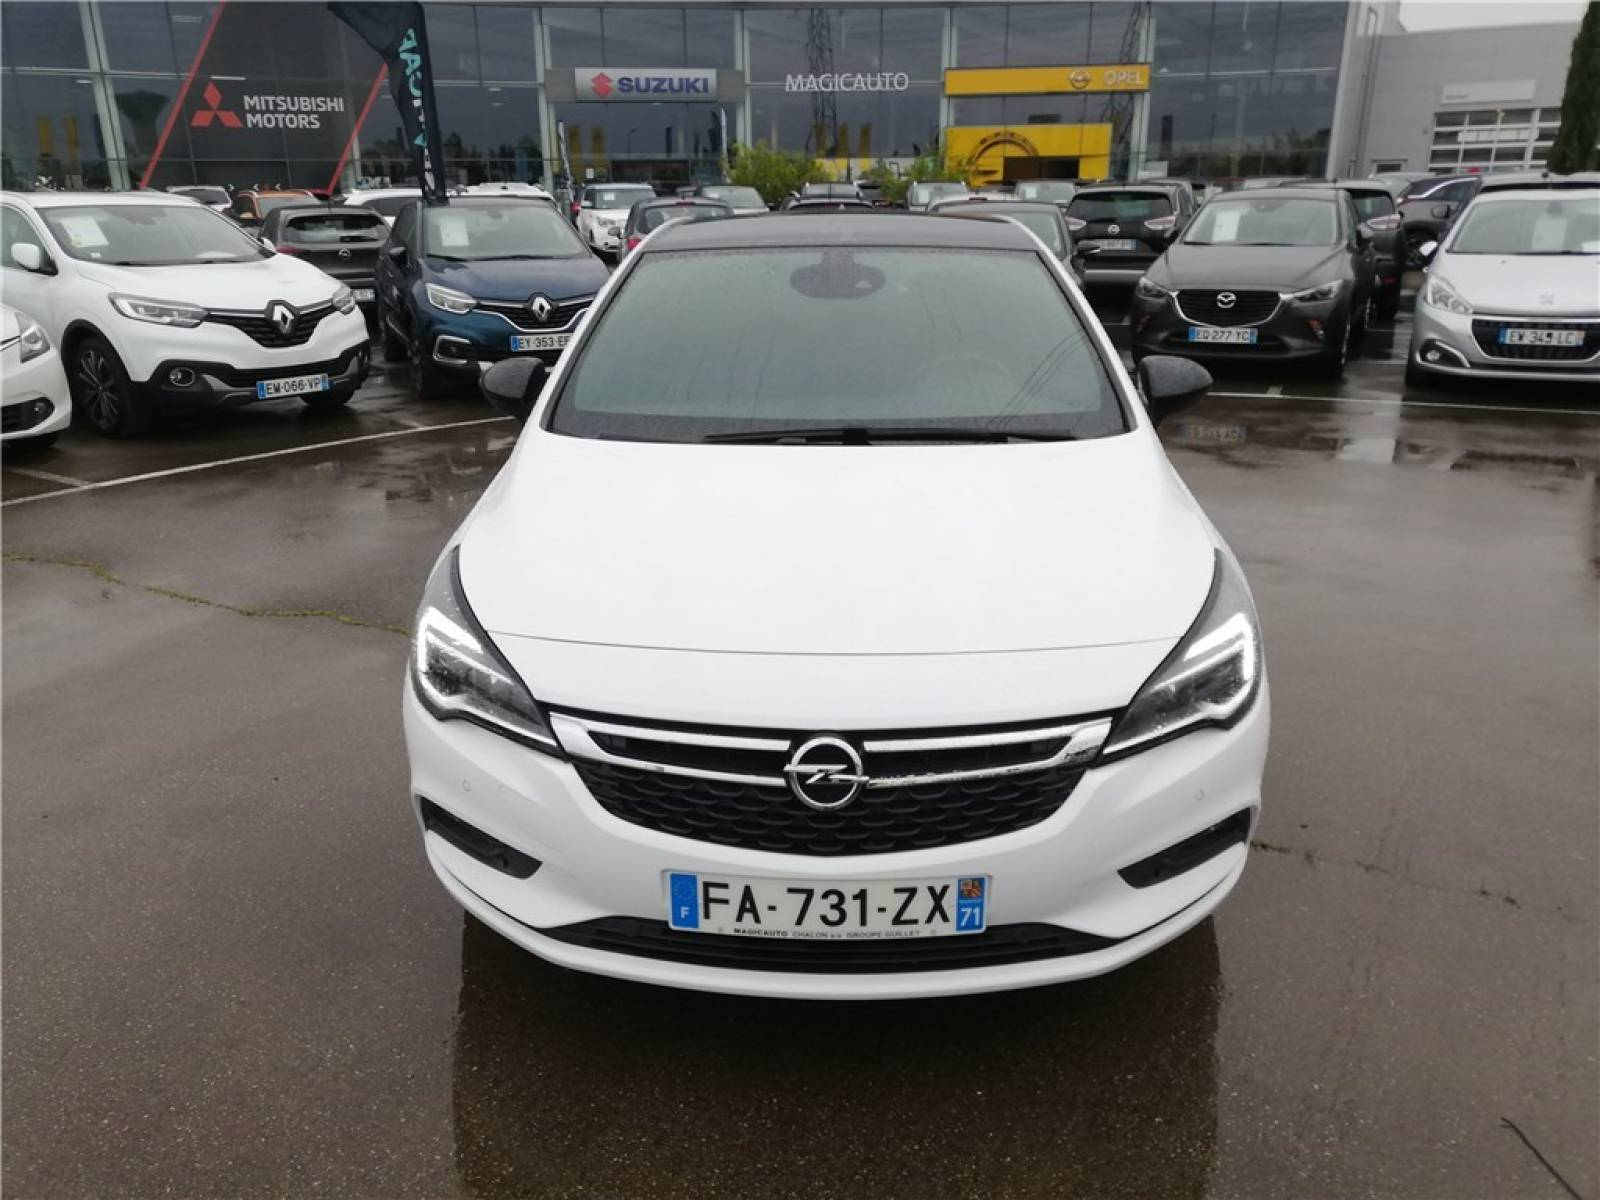 OPEL Astra 1.0 Turbo 105 ch ECOTEC Start/Stop - véhicule d'occasion - Groupe Guillet - Opel Magicauto - Chalon-sur-Saône - 71380 - Saint-Marcel - 2